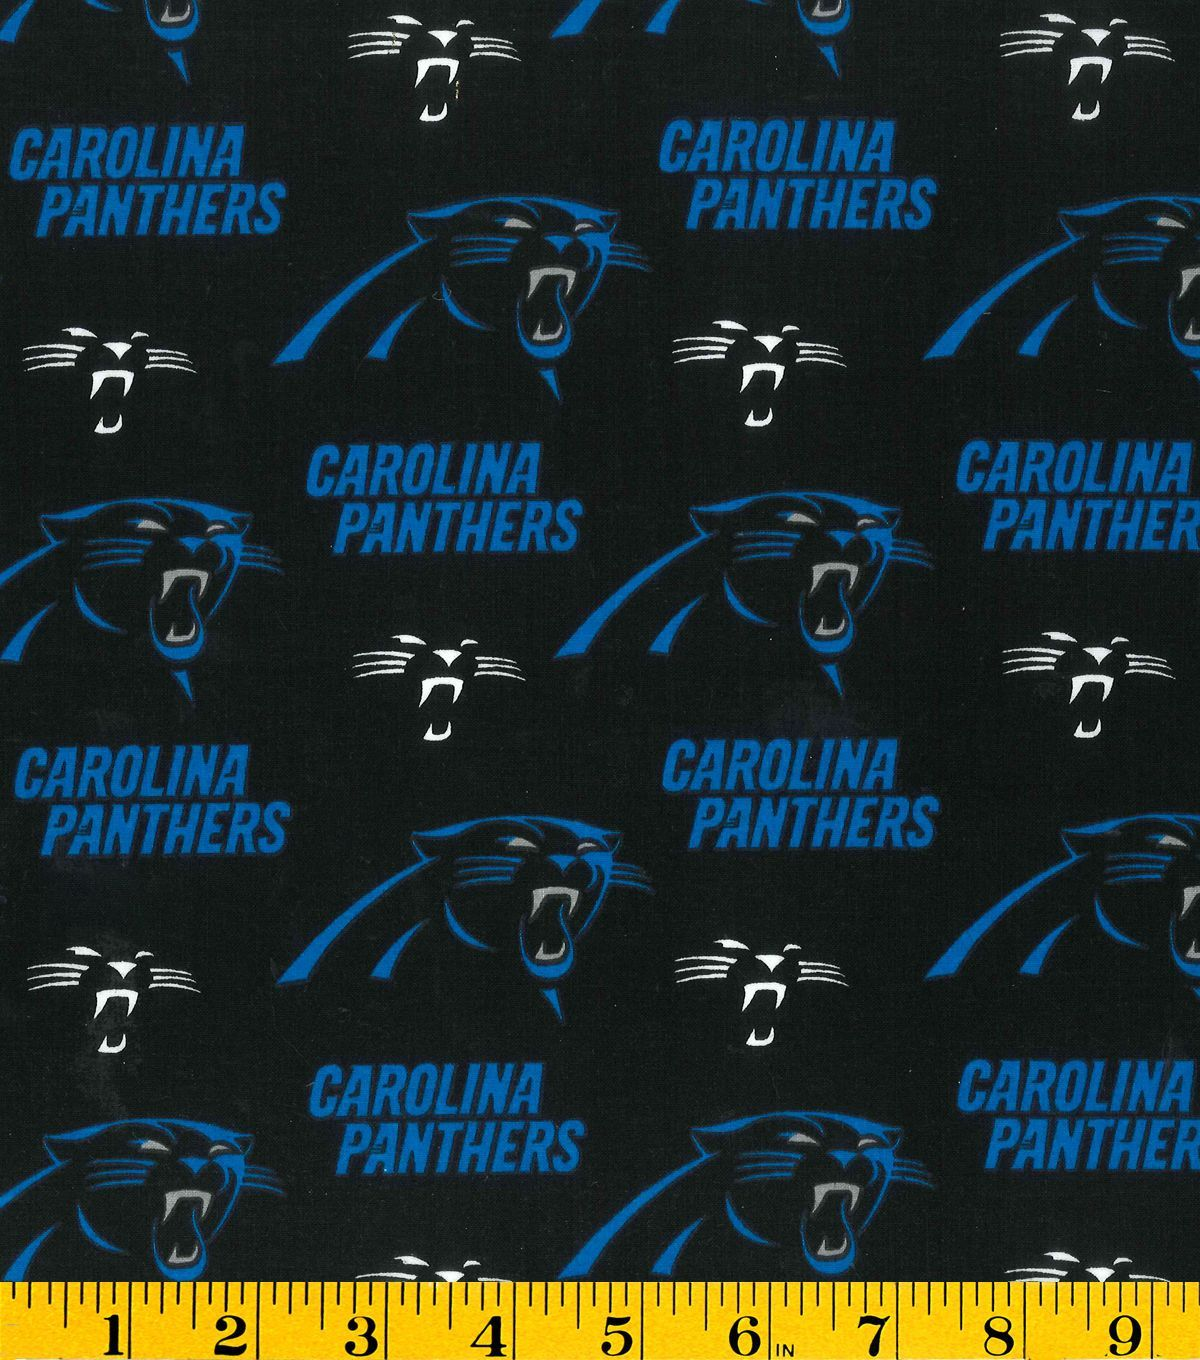 Carolina panthers cotton fabric